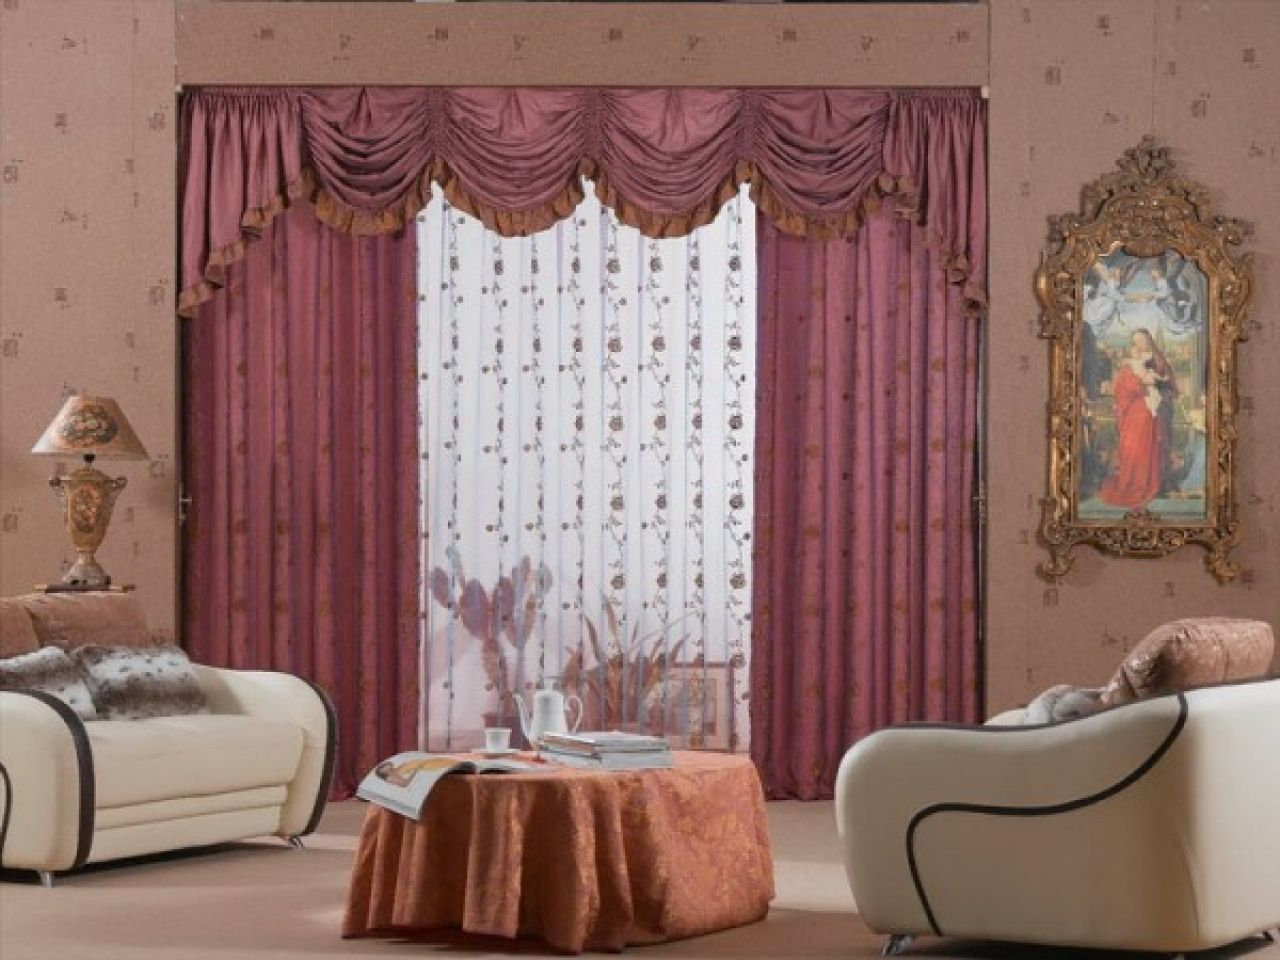 Living Room Curtain Designs Awesome Pinpavlina Dimitrova On Пердета И Щори  Pinterest Design Ideas